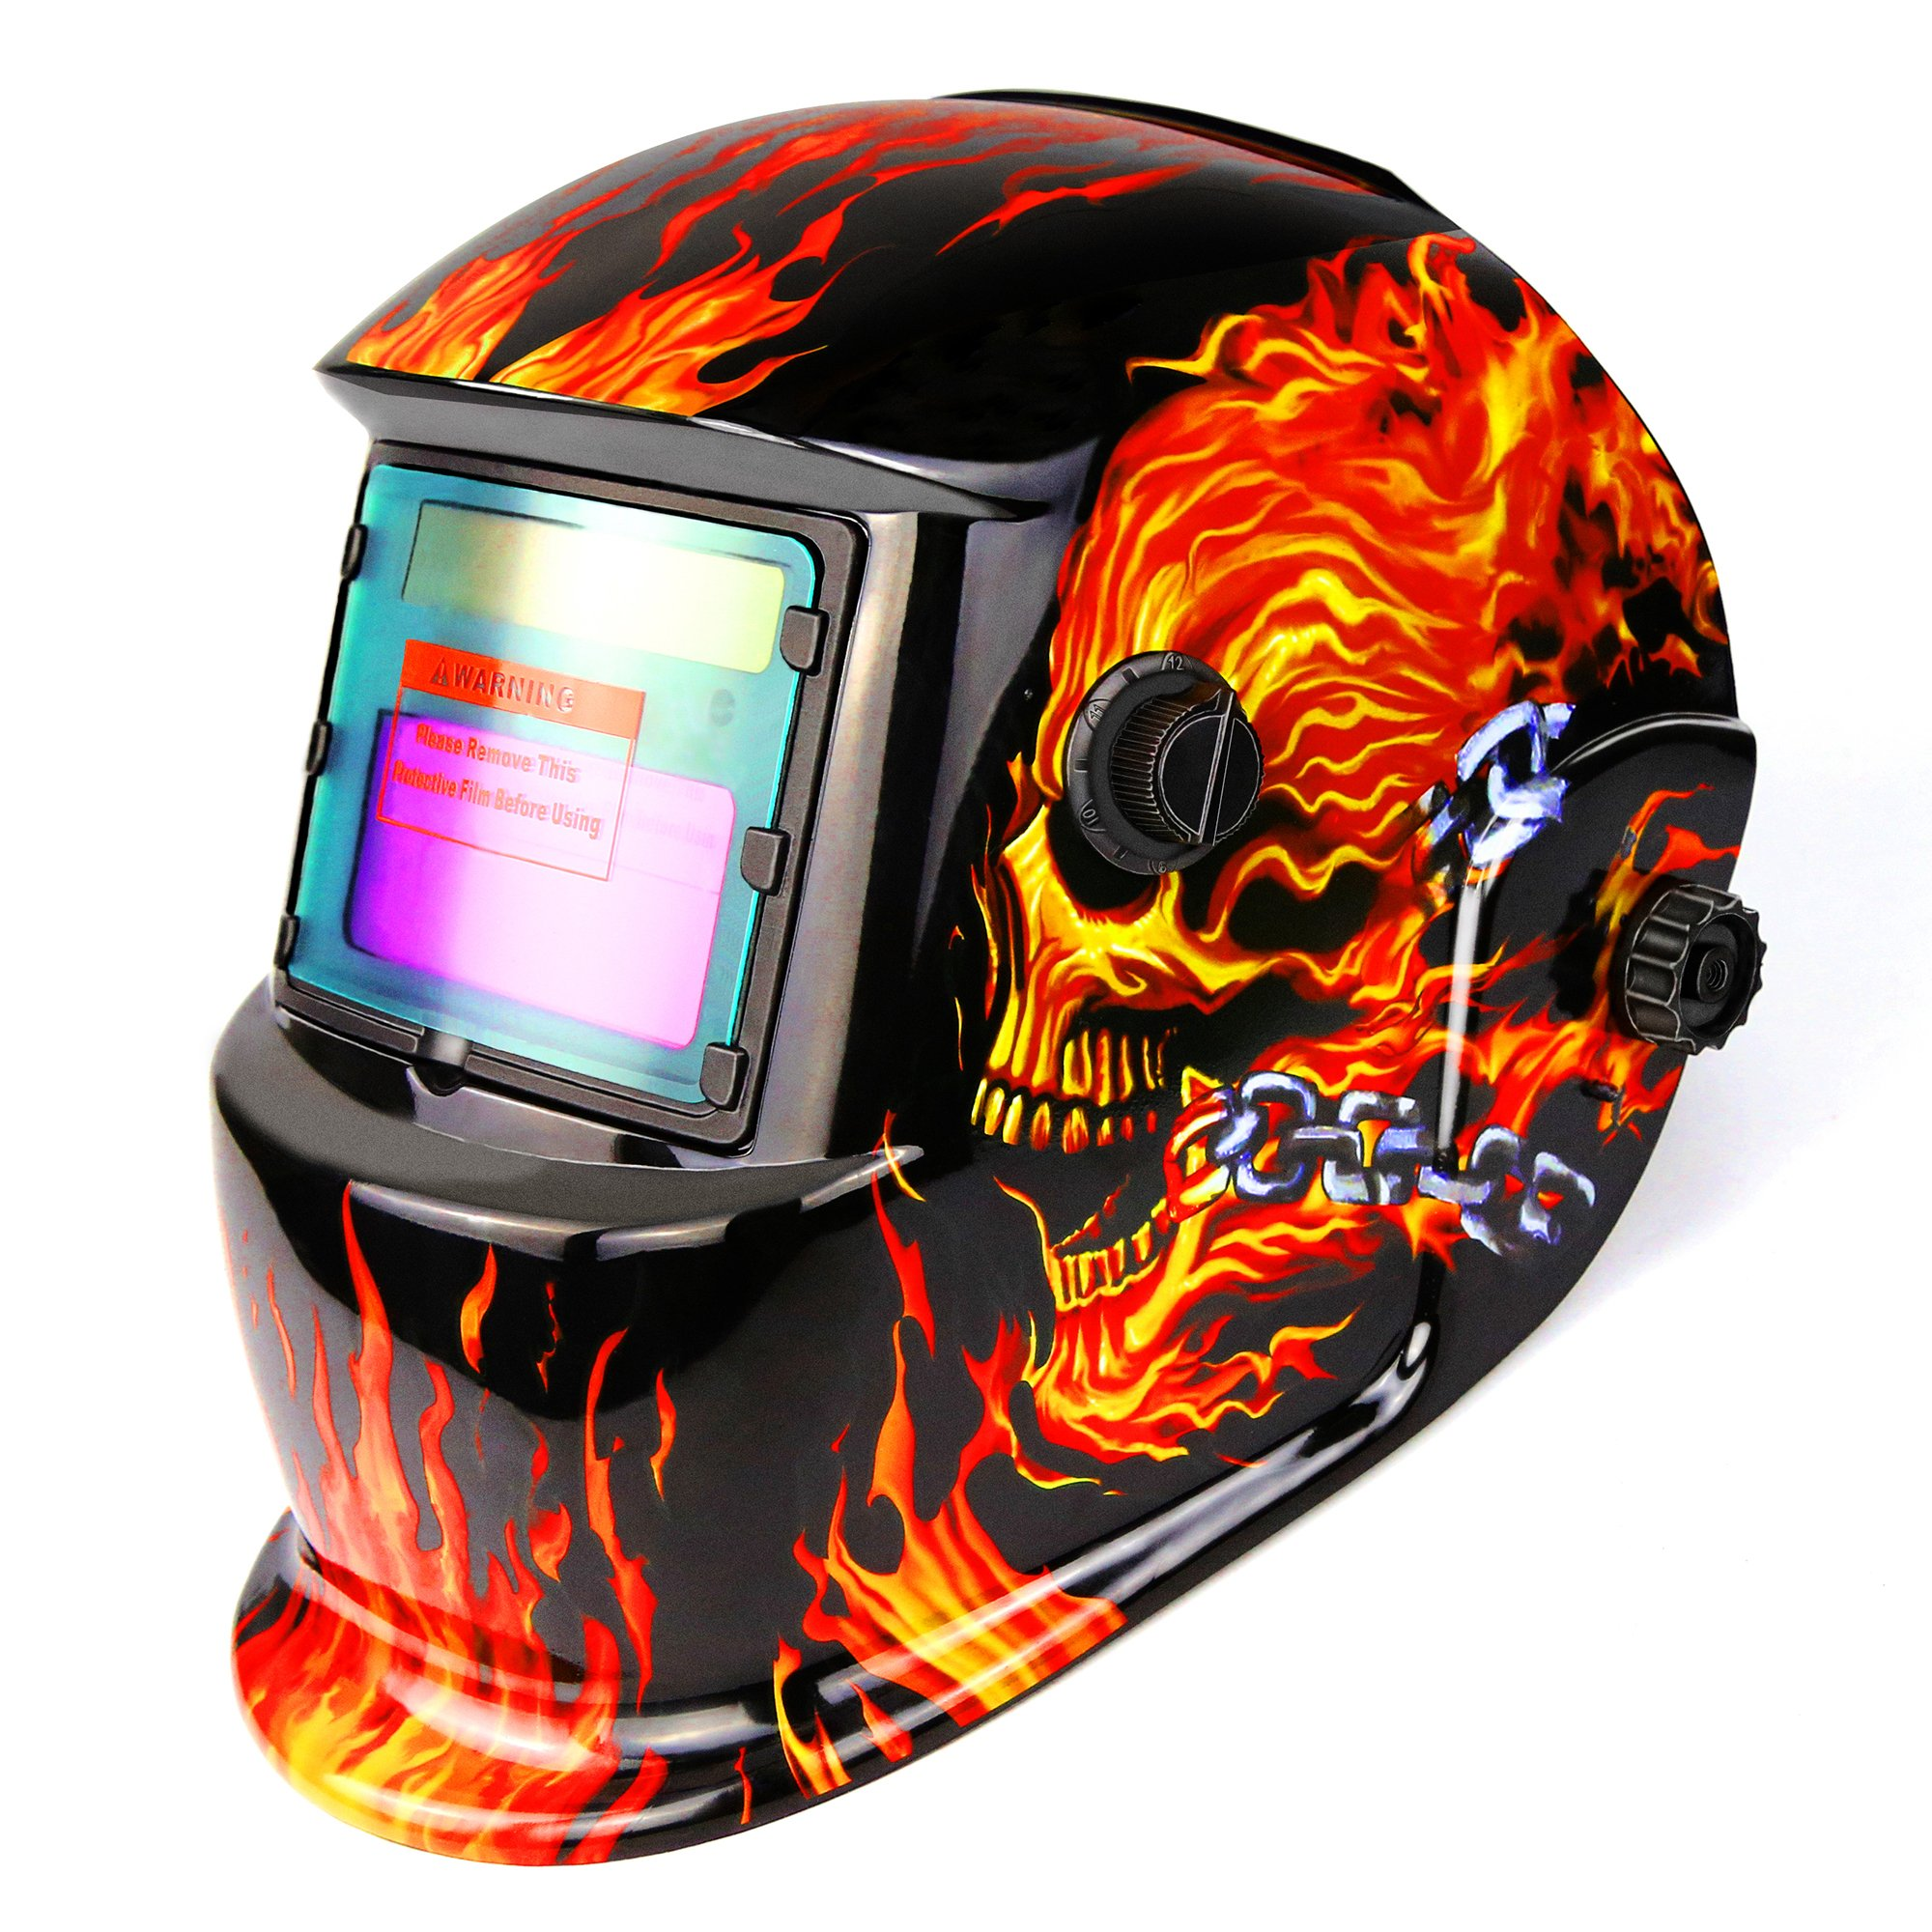 DEKOPRO Welding Helmet Solar Powered Auto Darkening Hood with Adjustable Shade Range 4/9-13 for Mig Tig Arc Welder Mask Shield Flaming Skull Design by DEKOPRO